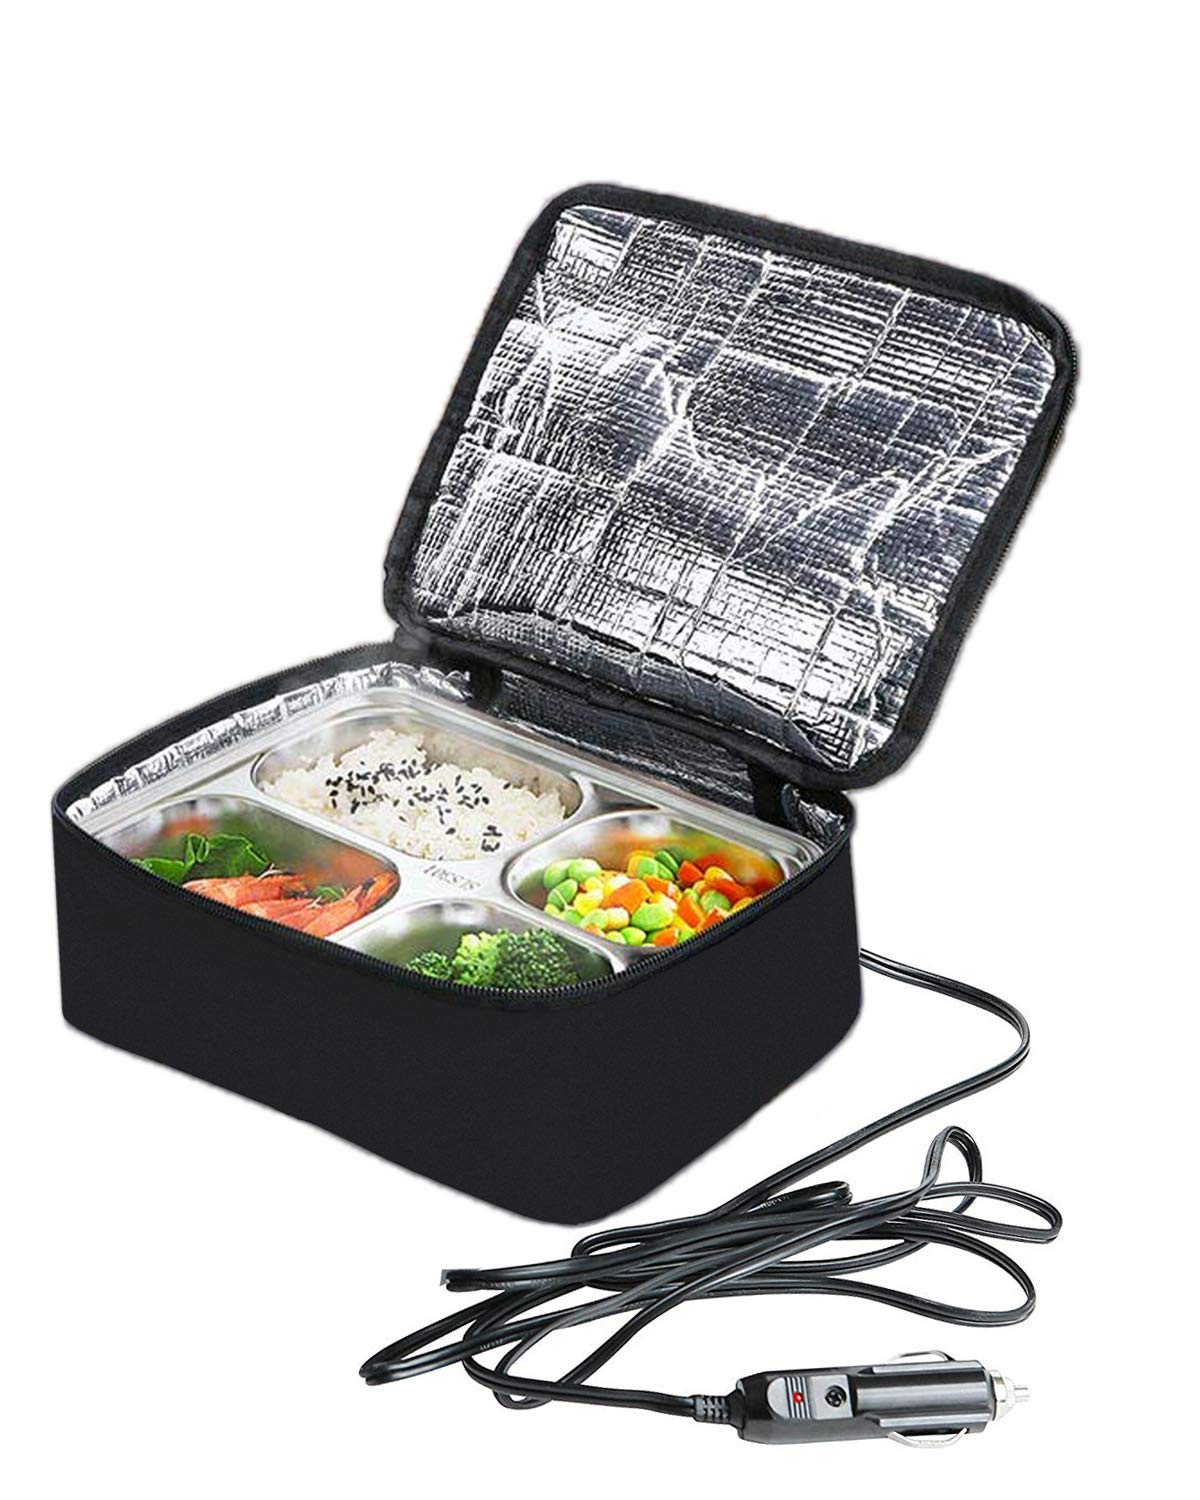 Big Ant 12V Car Heated Lunch Box Portable Lunch Food Warmer Oven for Outdoors Travel and Camping(Black)